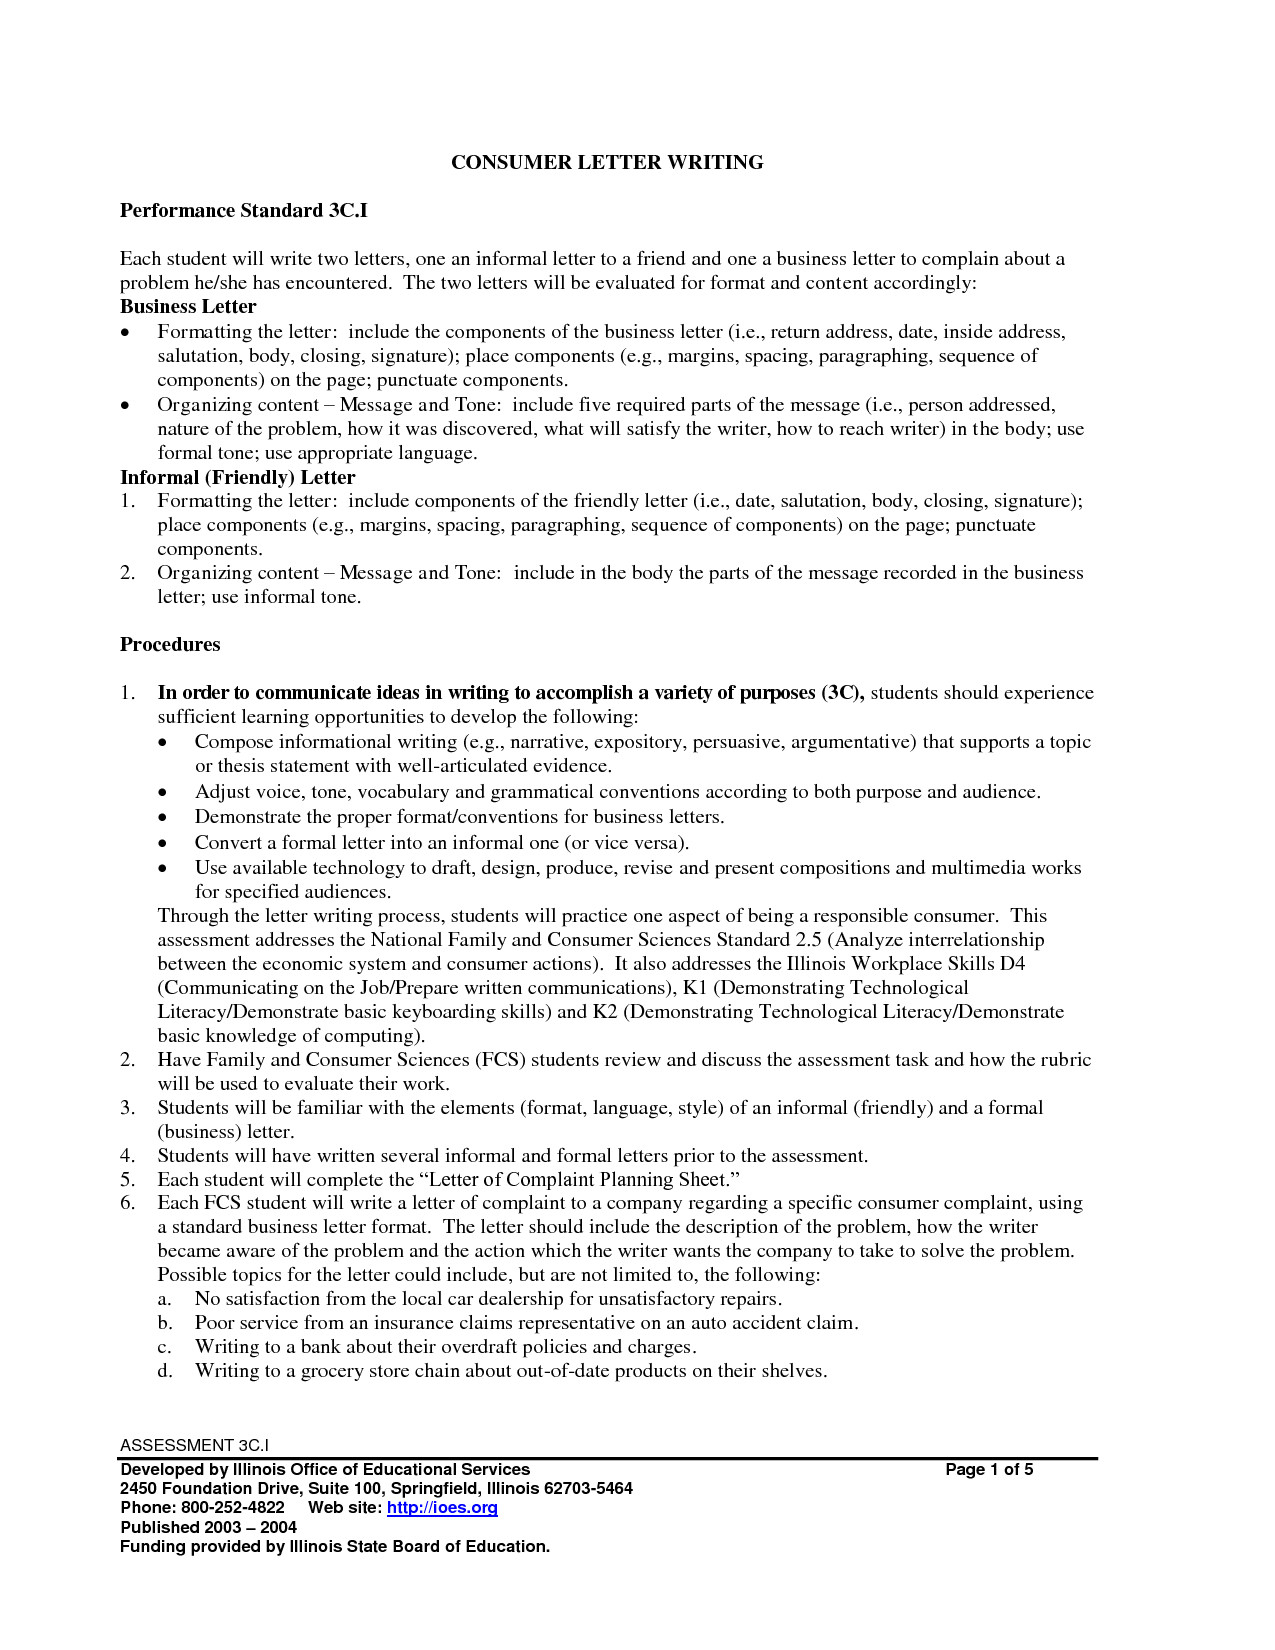 Service Contract Renewal Letter Template - Employment Contract Renewal Letter Sample Doc Best Consumer